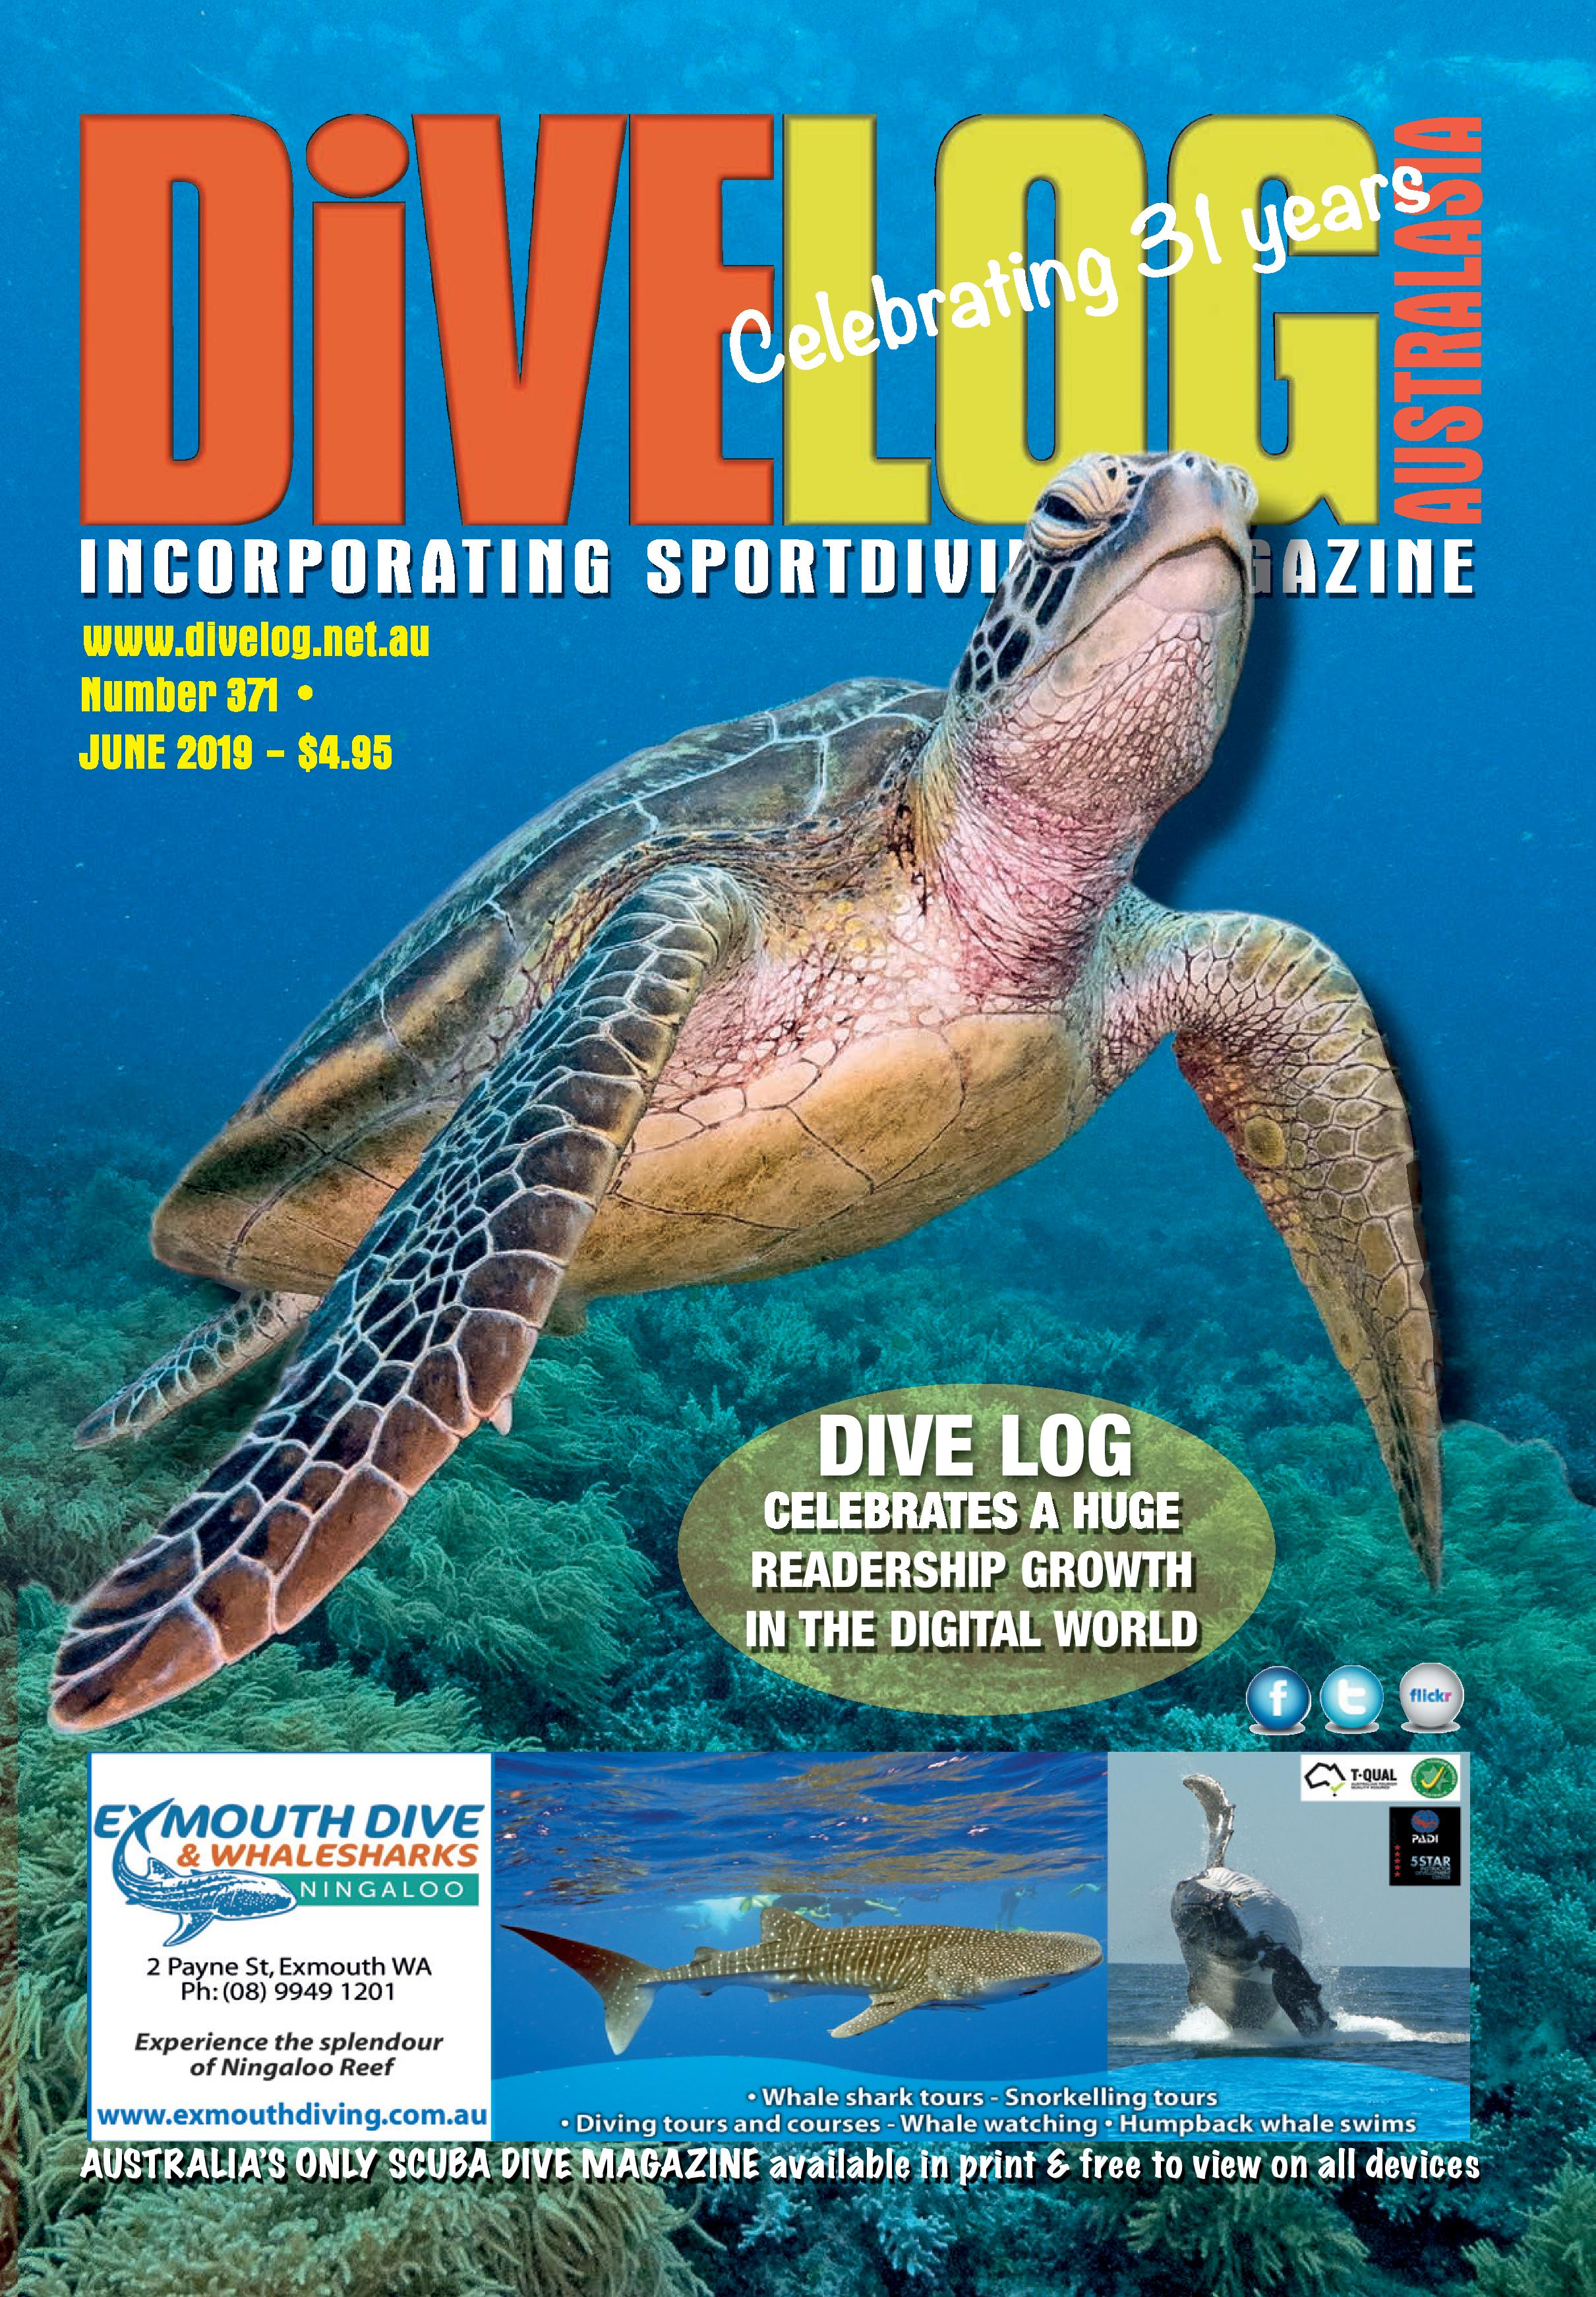 DivelogFrontCover 06.19-page-001.jpg